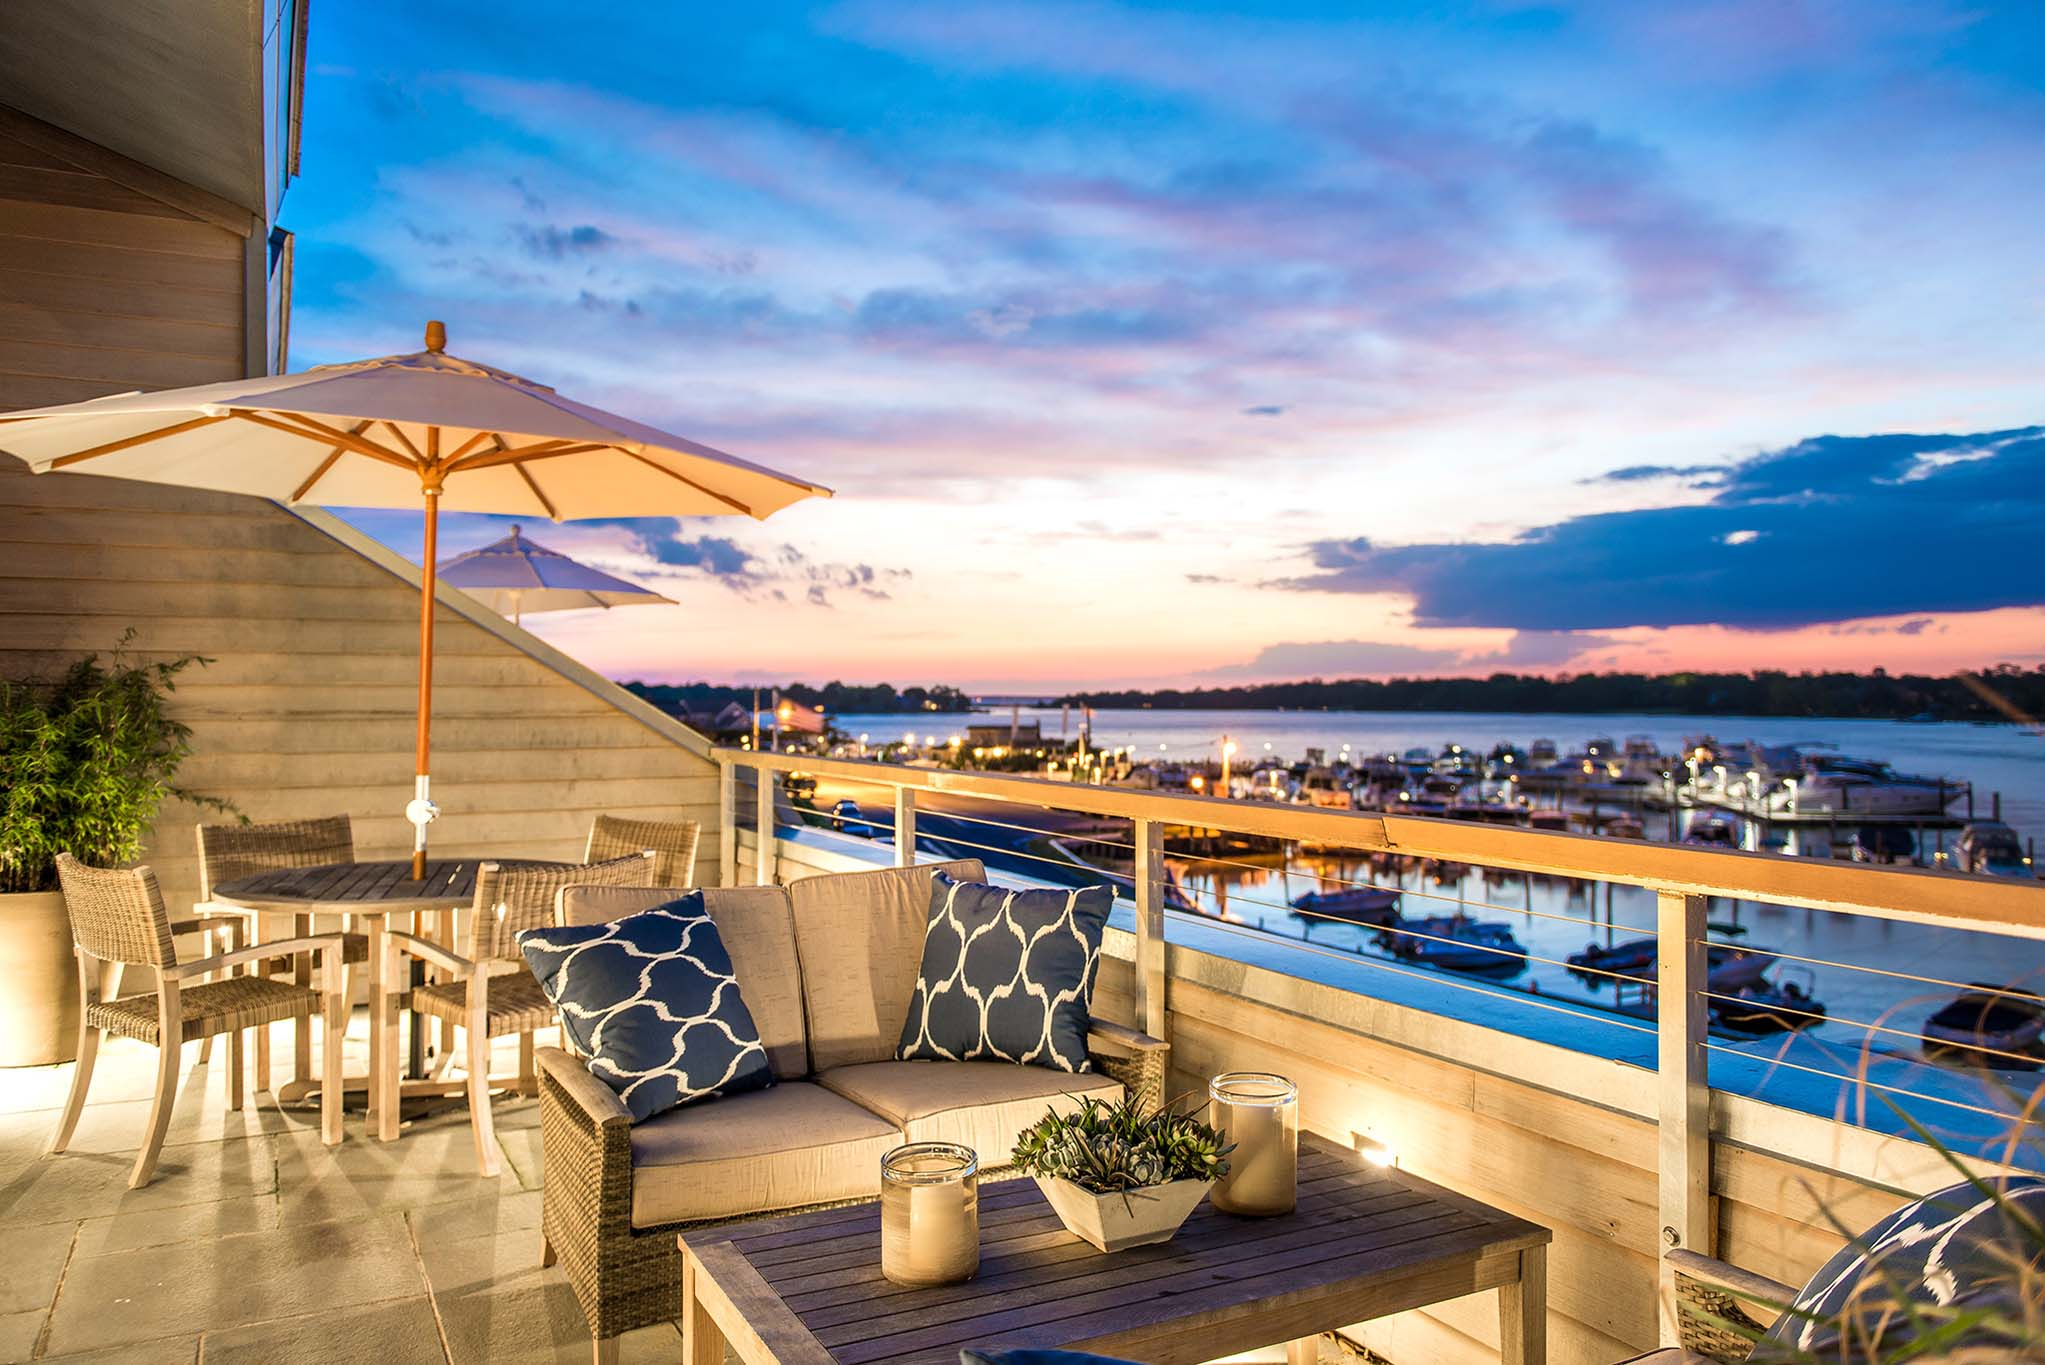 Condominium for Sale at Harbor's Edge - Resort Lifestyle In Sag Harbor 21 West Water Street, Phb, Sag Harbor, New York